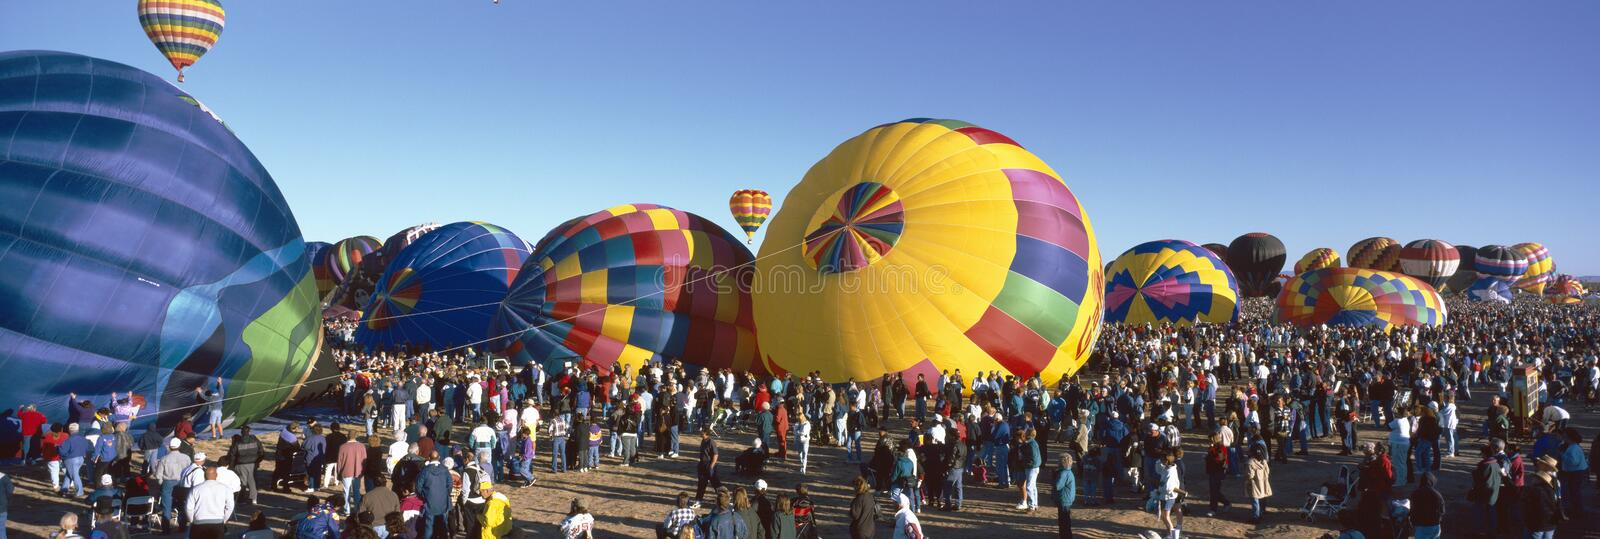 25th Albuquerque internationella ballongFiesta som är ny - Mexiko arkivfoton